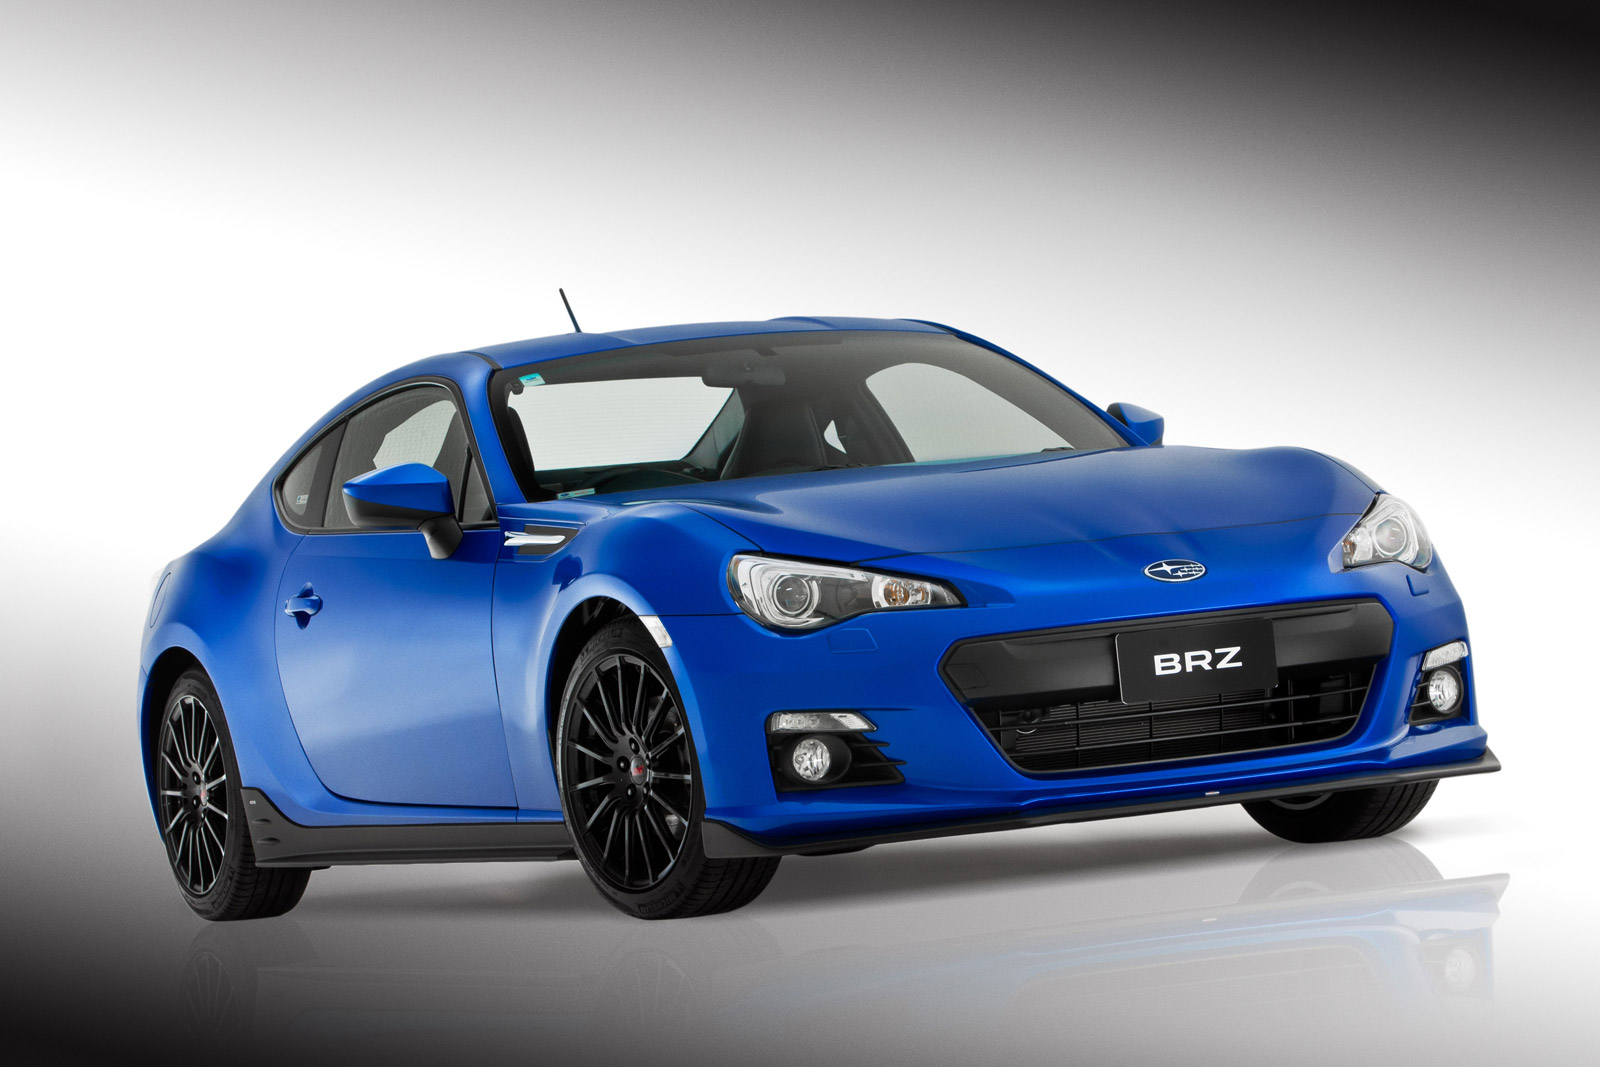 Subaru previews new sti upgrades for the brz vanachro Image collections